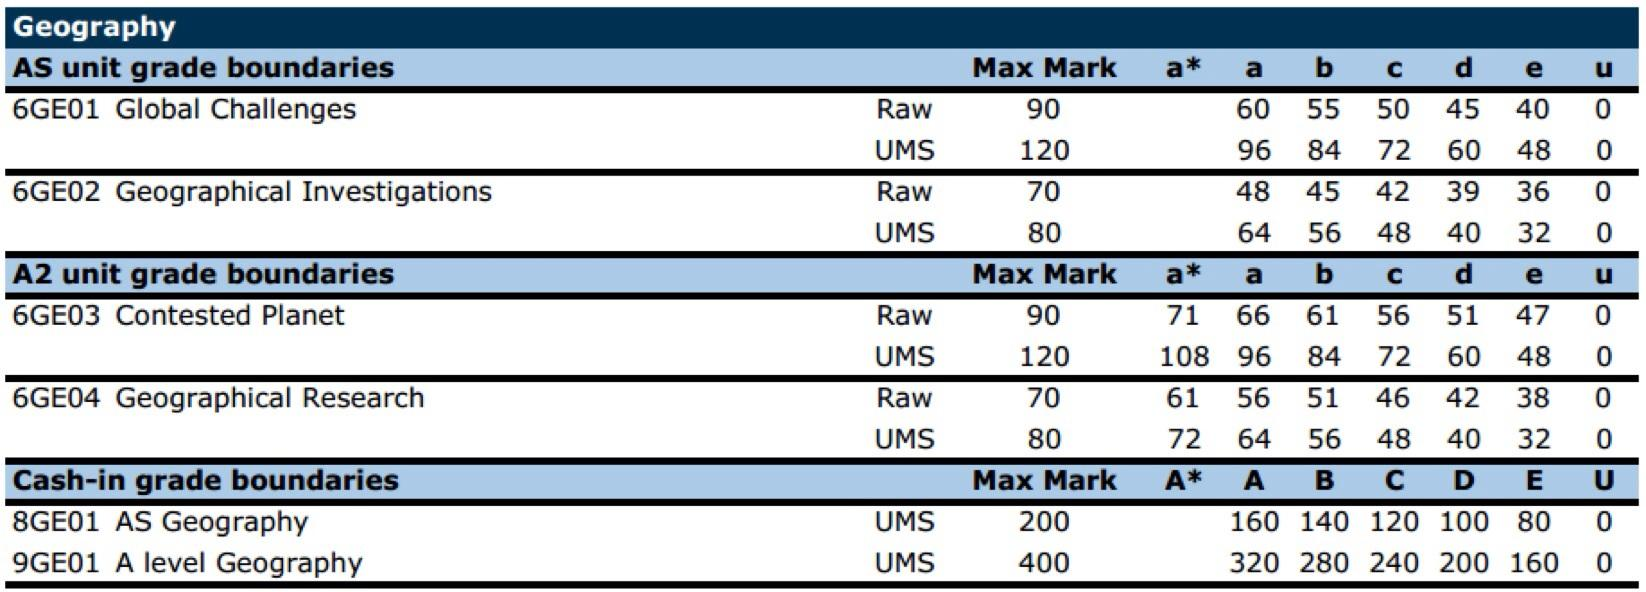 edexcel a level history coursework ums After they have sat the examination and their papers have been marked, edexcel senior examiners raw mark grade boundaries as follows: ict ums example_1doc.